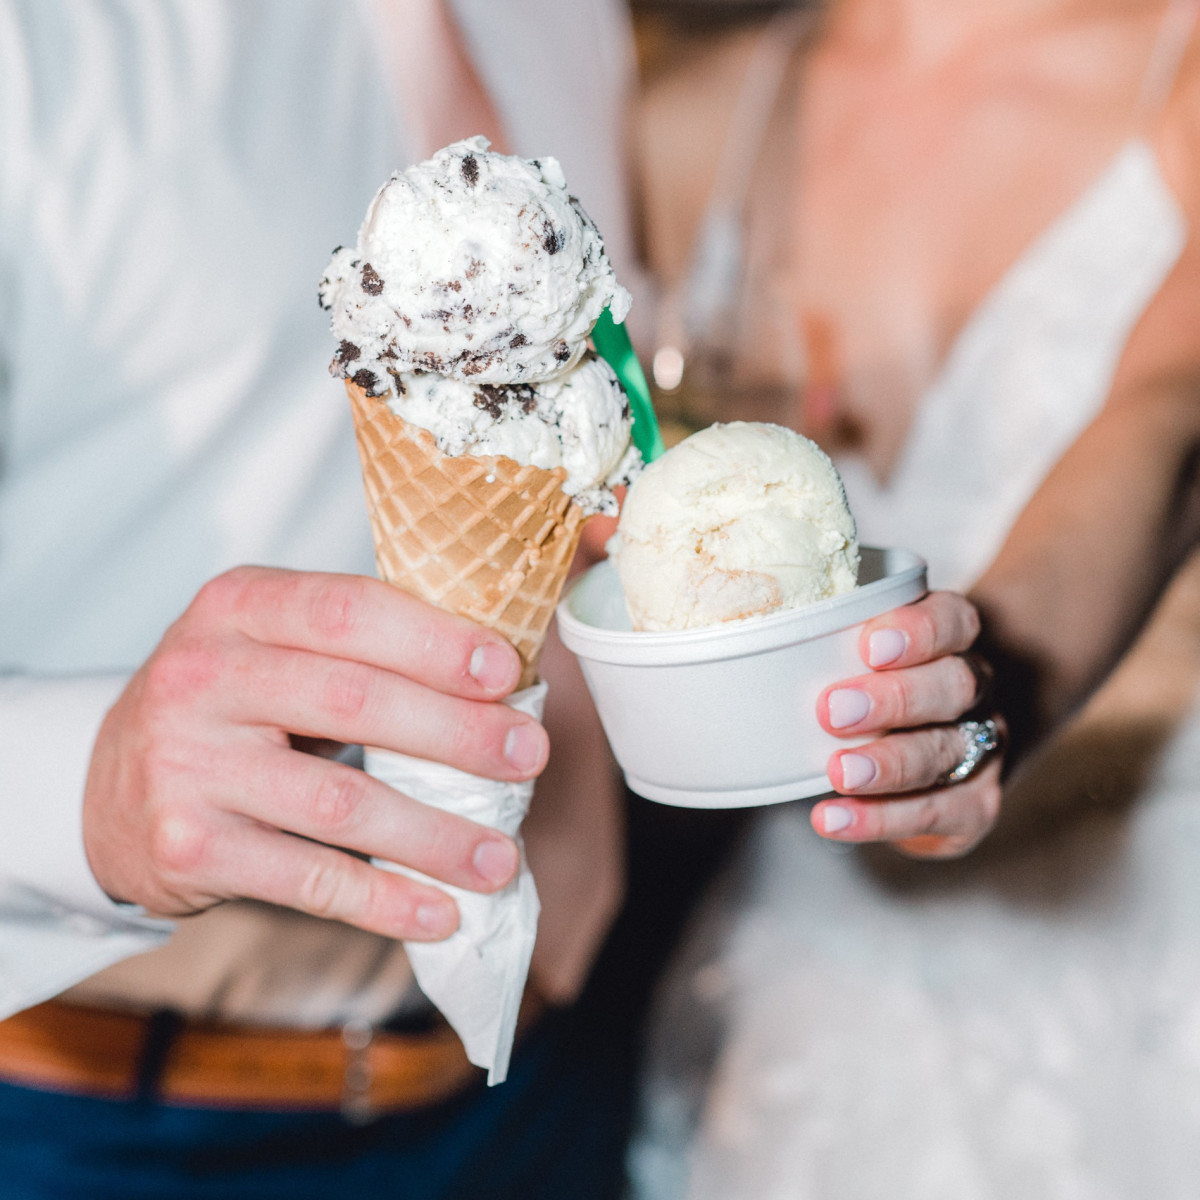 Gypsy Scoops, ice cream, Sidawi Haney wedding